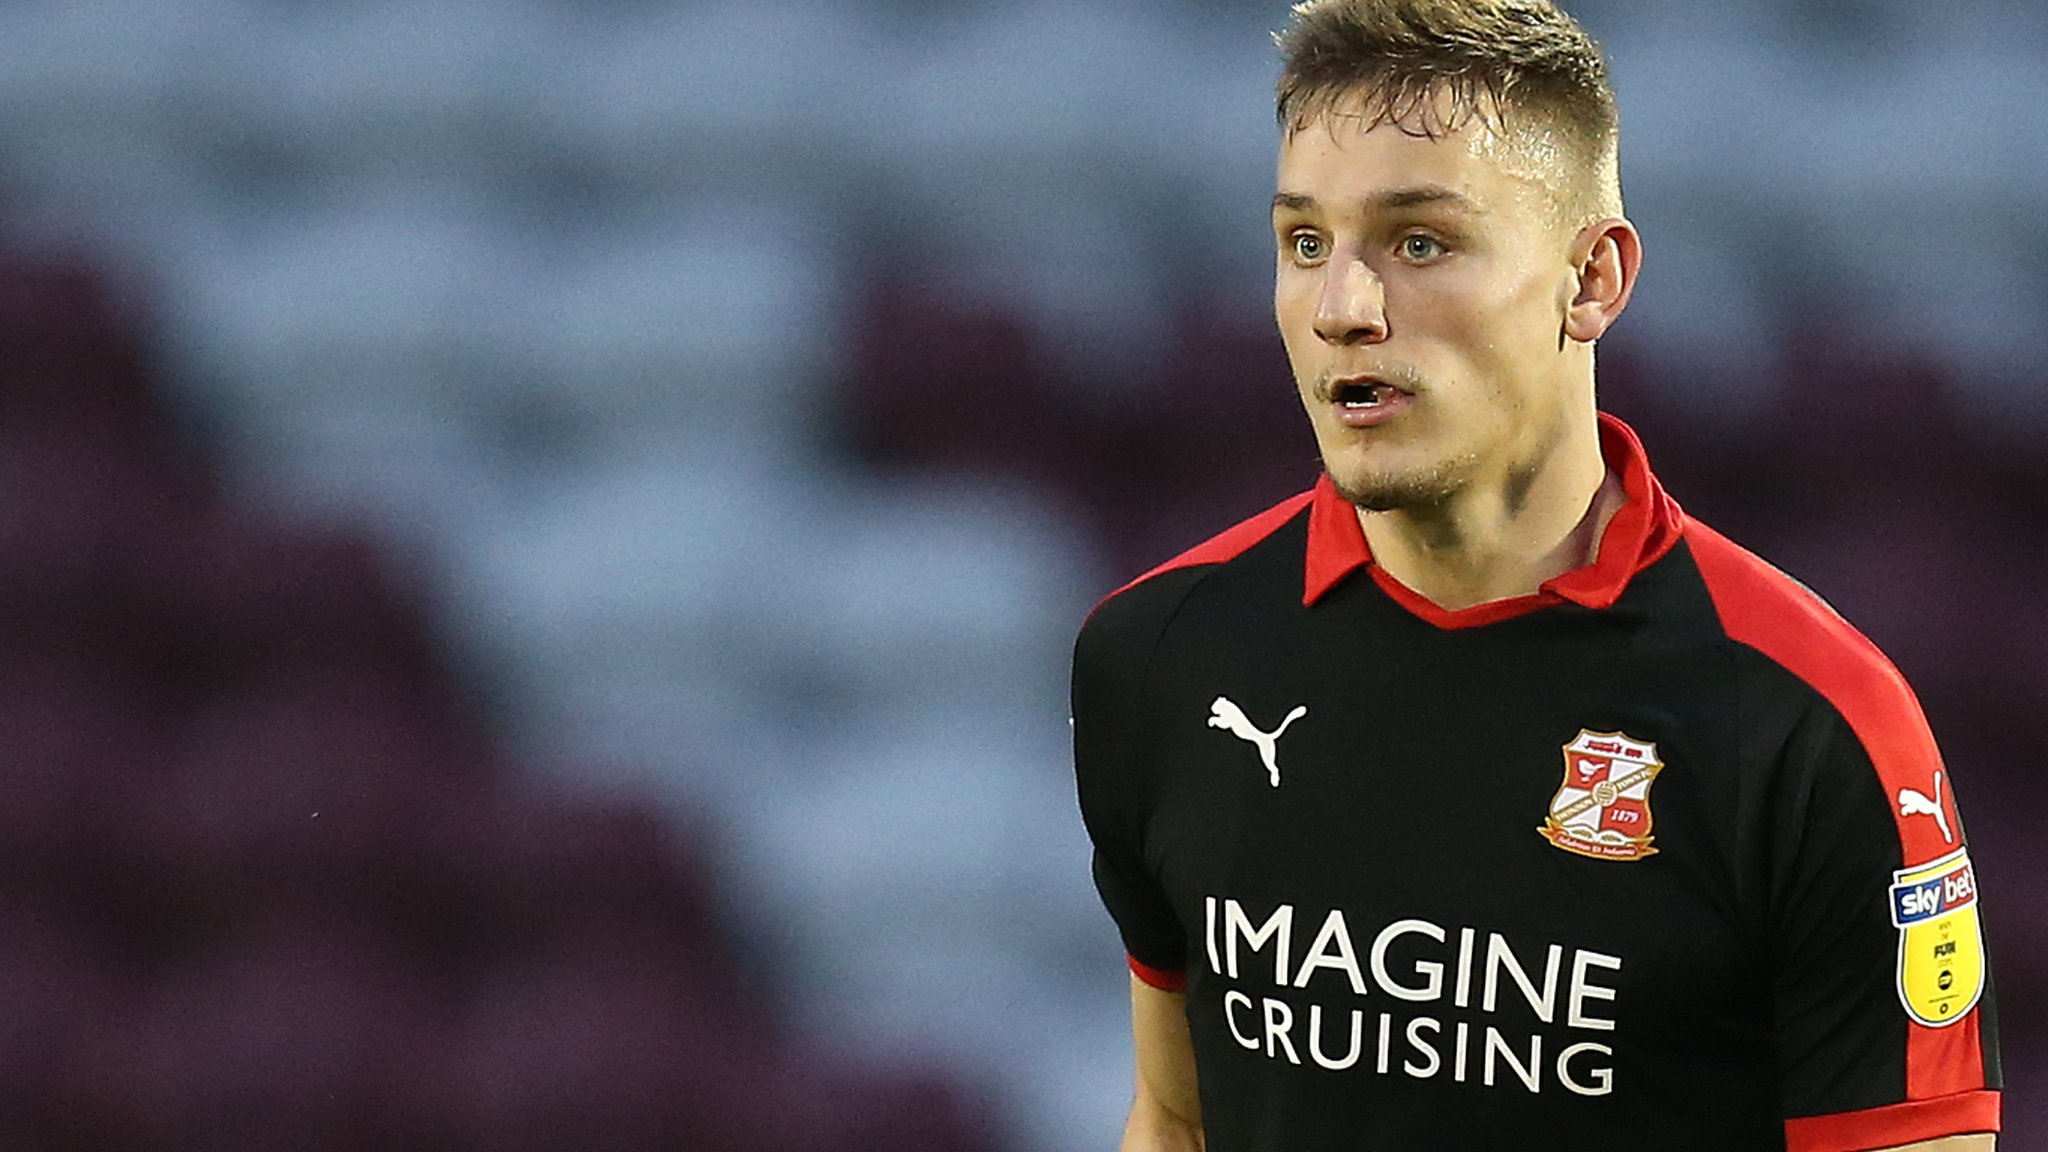 Swindon loanee extends deal with Ipswich